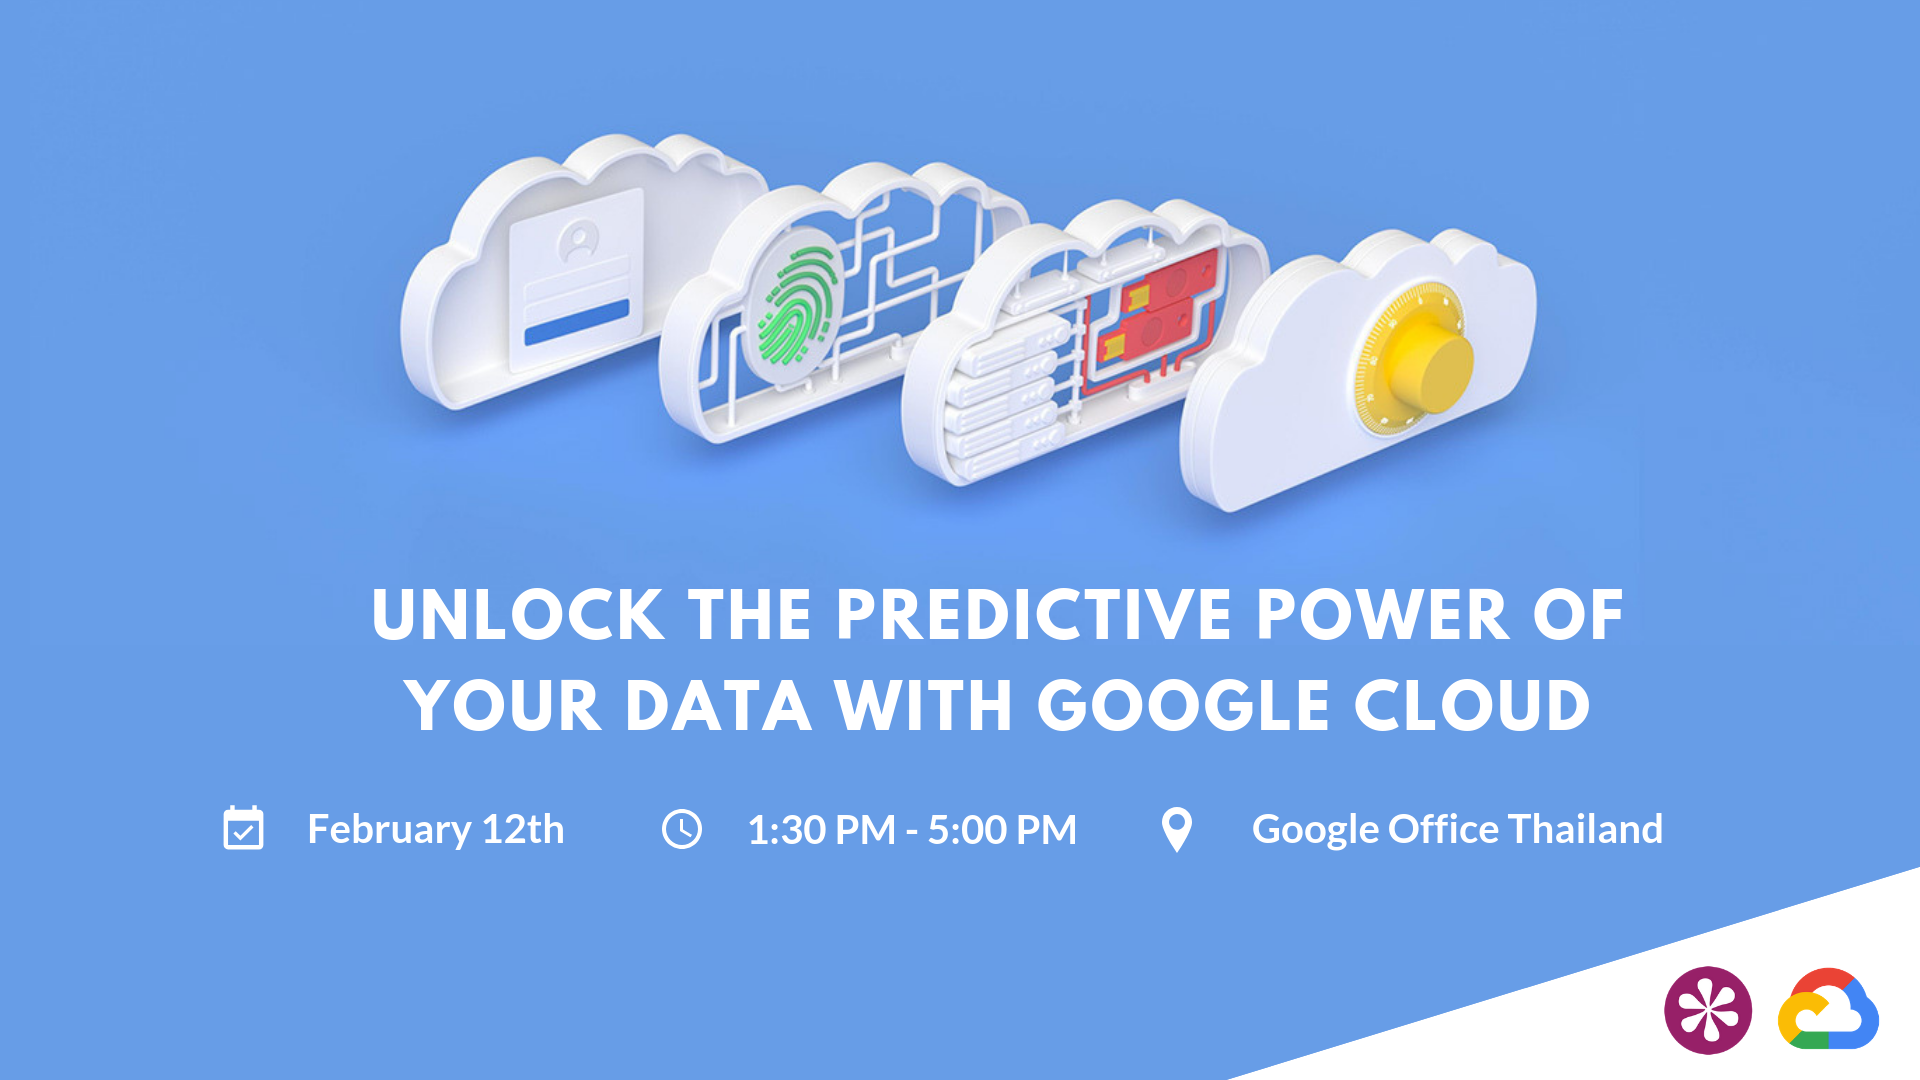 Unlock the predictive power of your data through machine learning models - Website-3